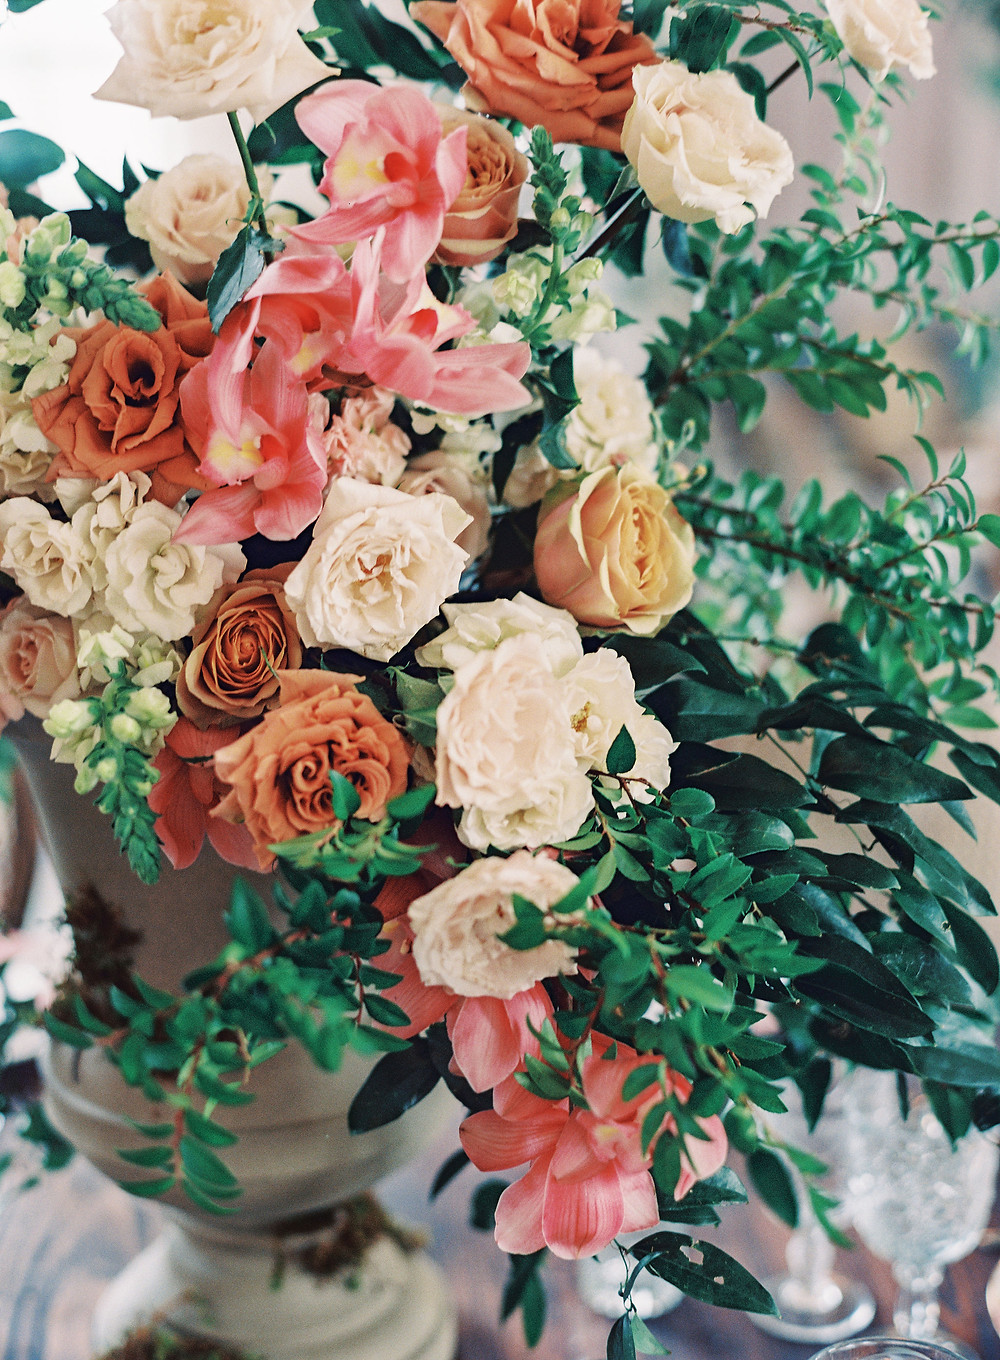 Leaf + petal, New Orleans, Marigny opera house, toffee roses, cappuccino roses, orchids, garden urns, Bridgerton wedding